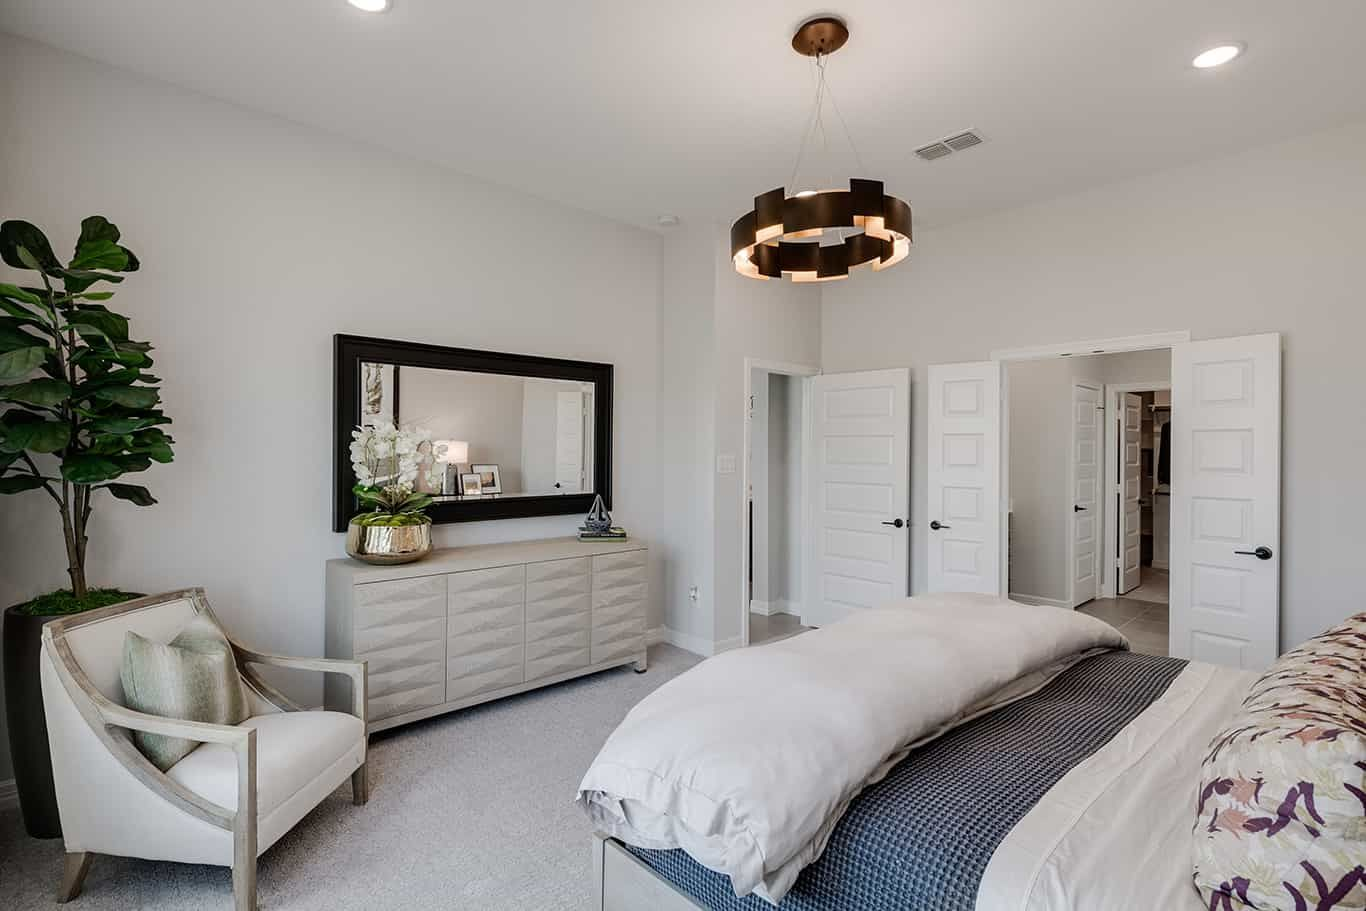 Bedroom featured in the Sheldon By Tri Pointe Homes in Austin, TX